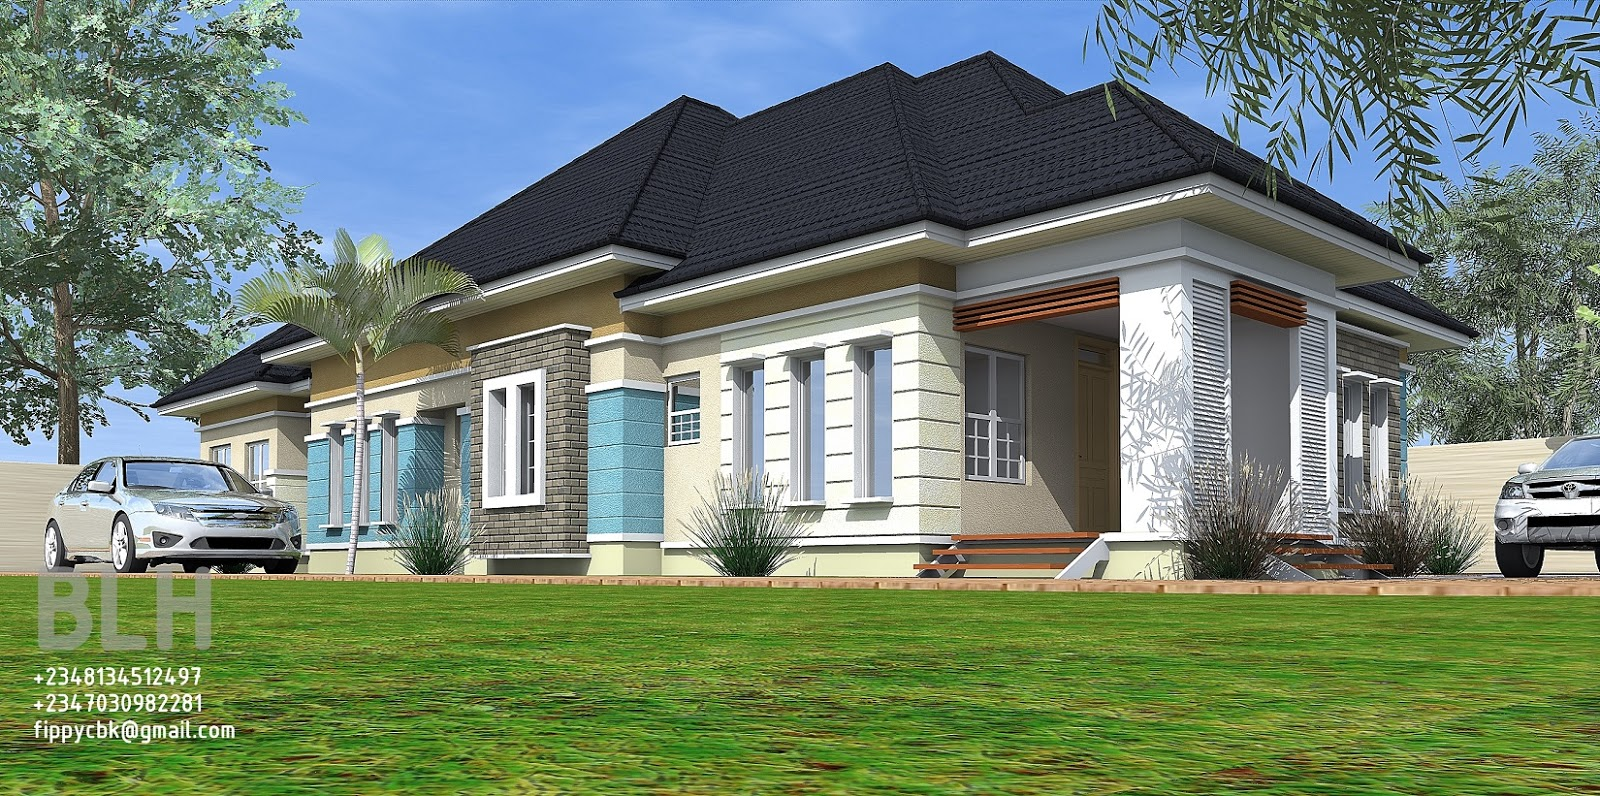 Architectural designs by blacklakehouse 4 bedroom bungalow for 4 bedroom bungalow house designs